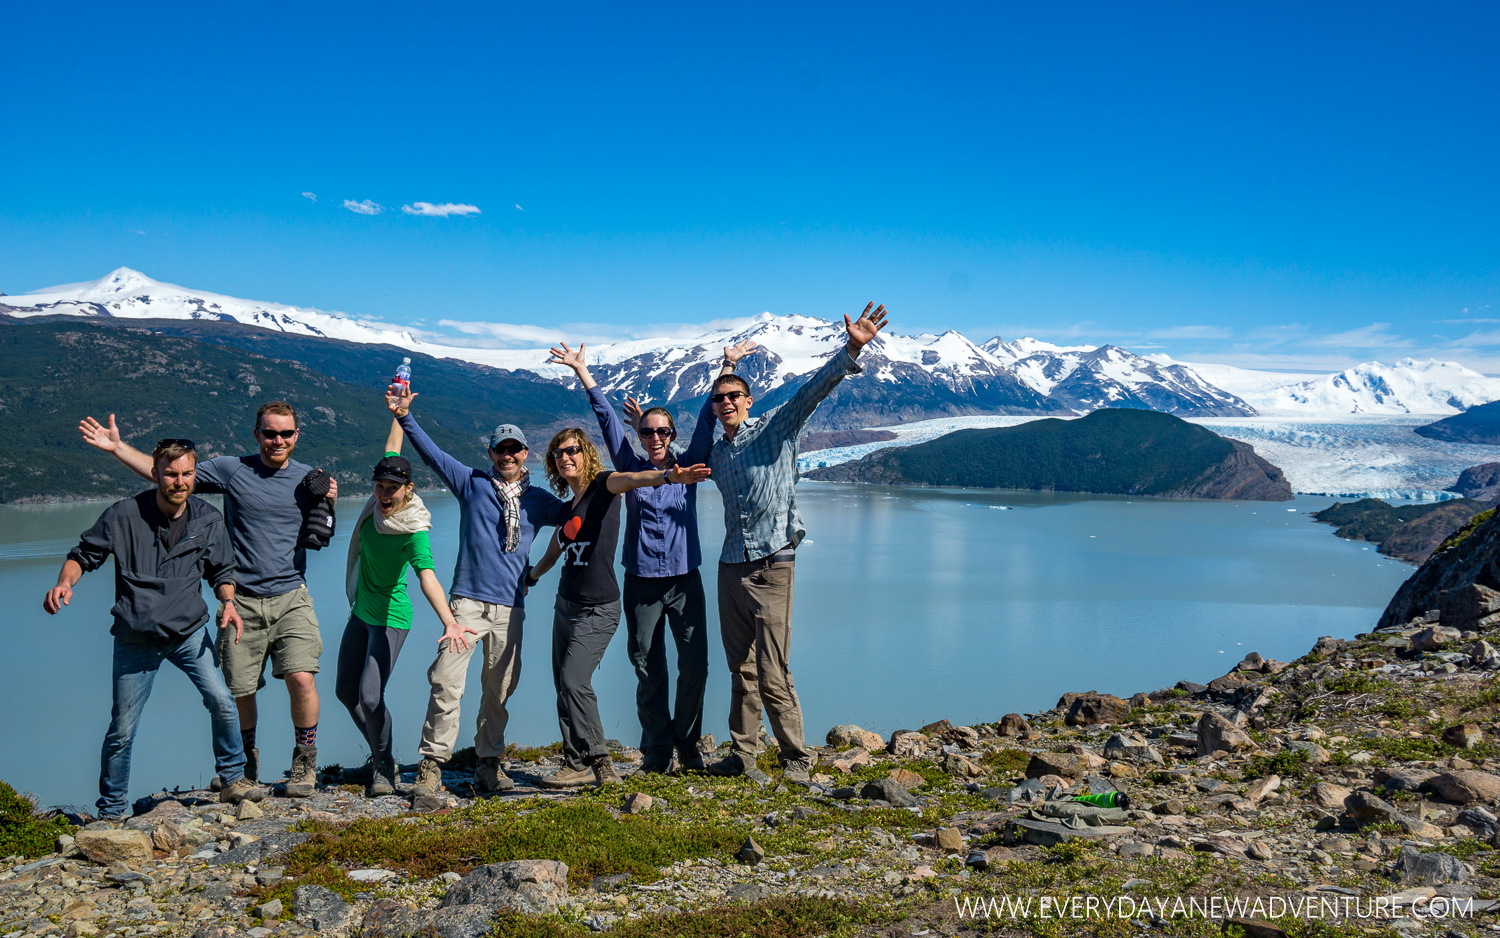 Our hiking troop - Jonathan, Gordon, Tessa, Andrew, Fleur, and us!